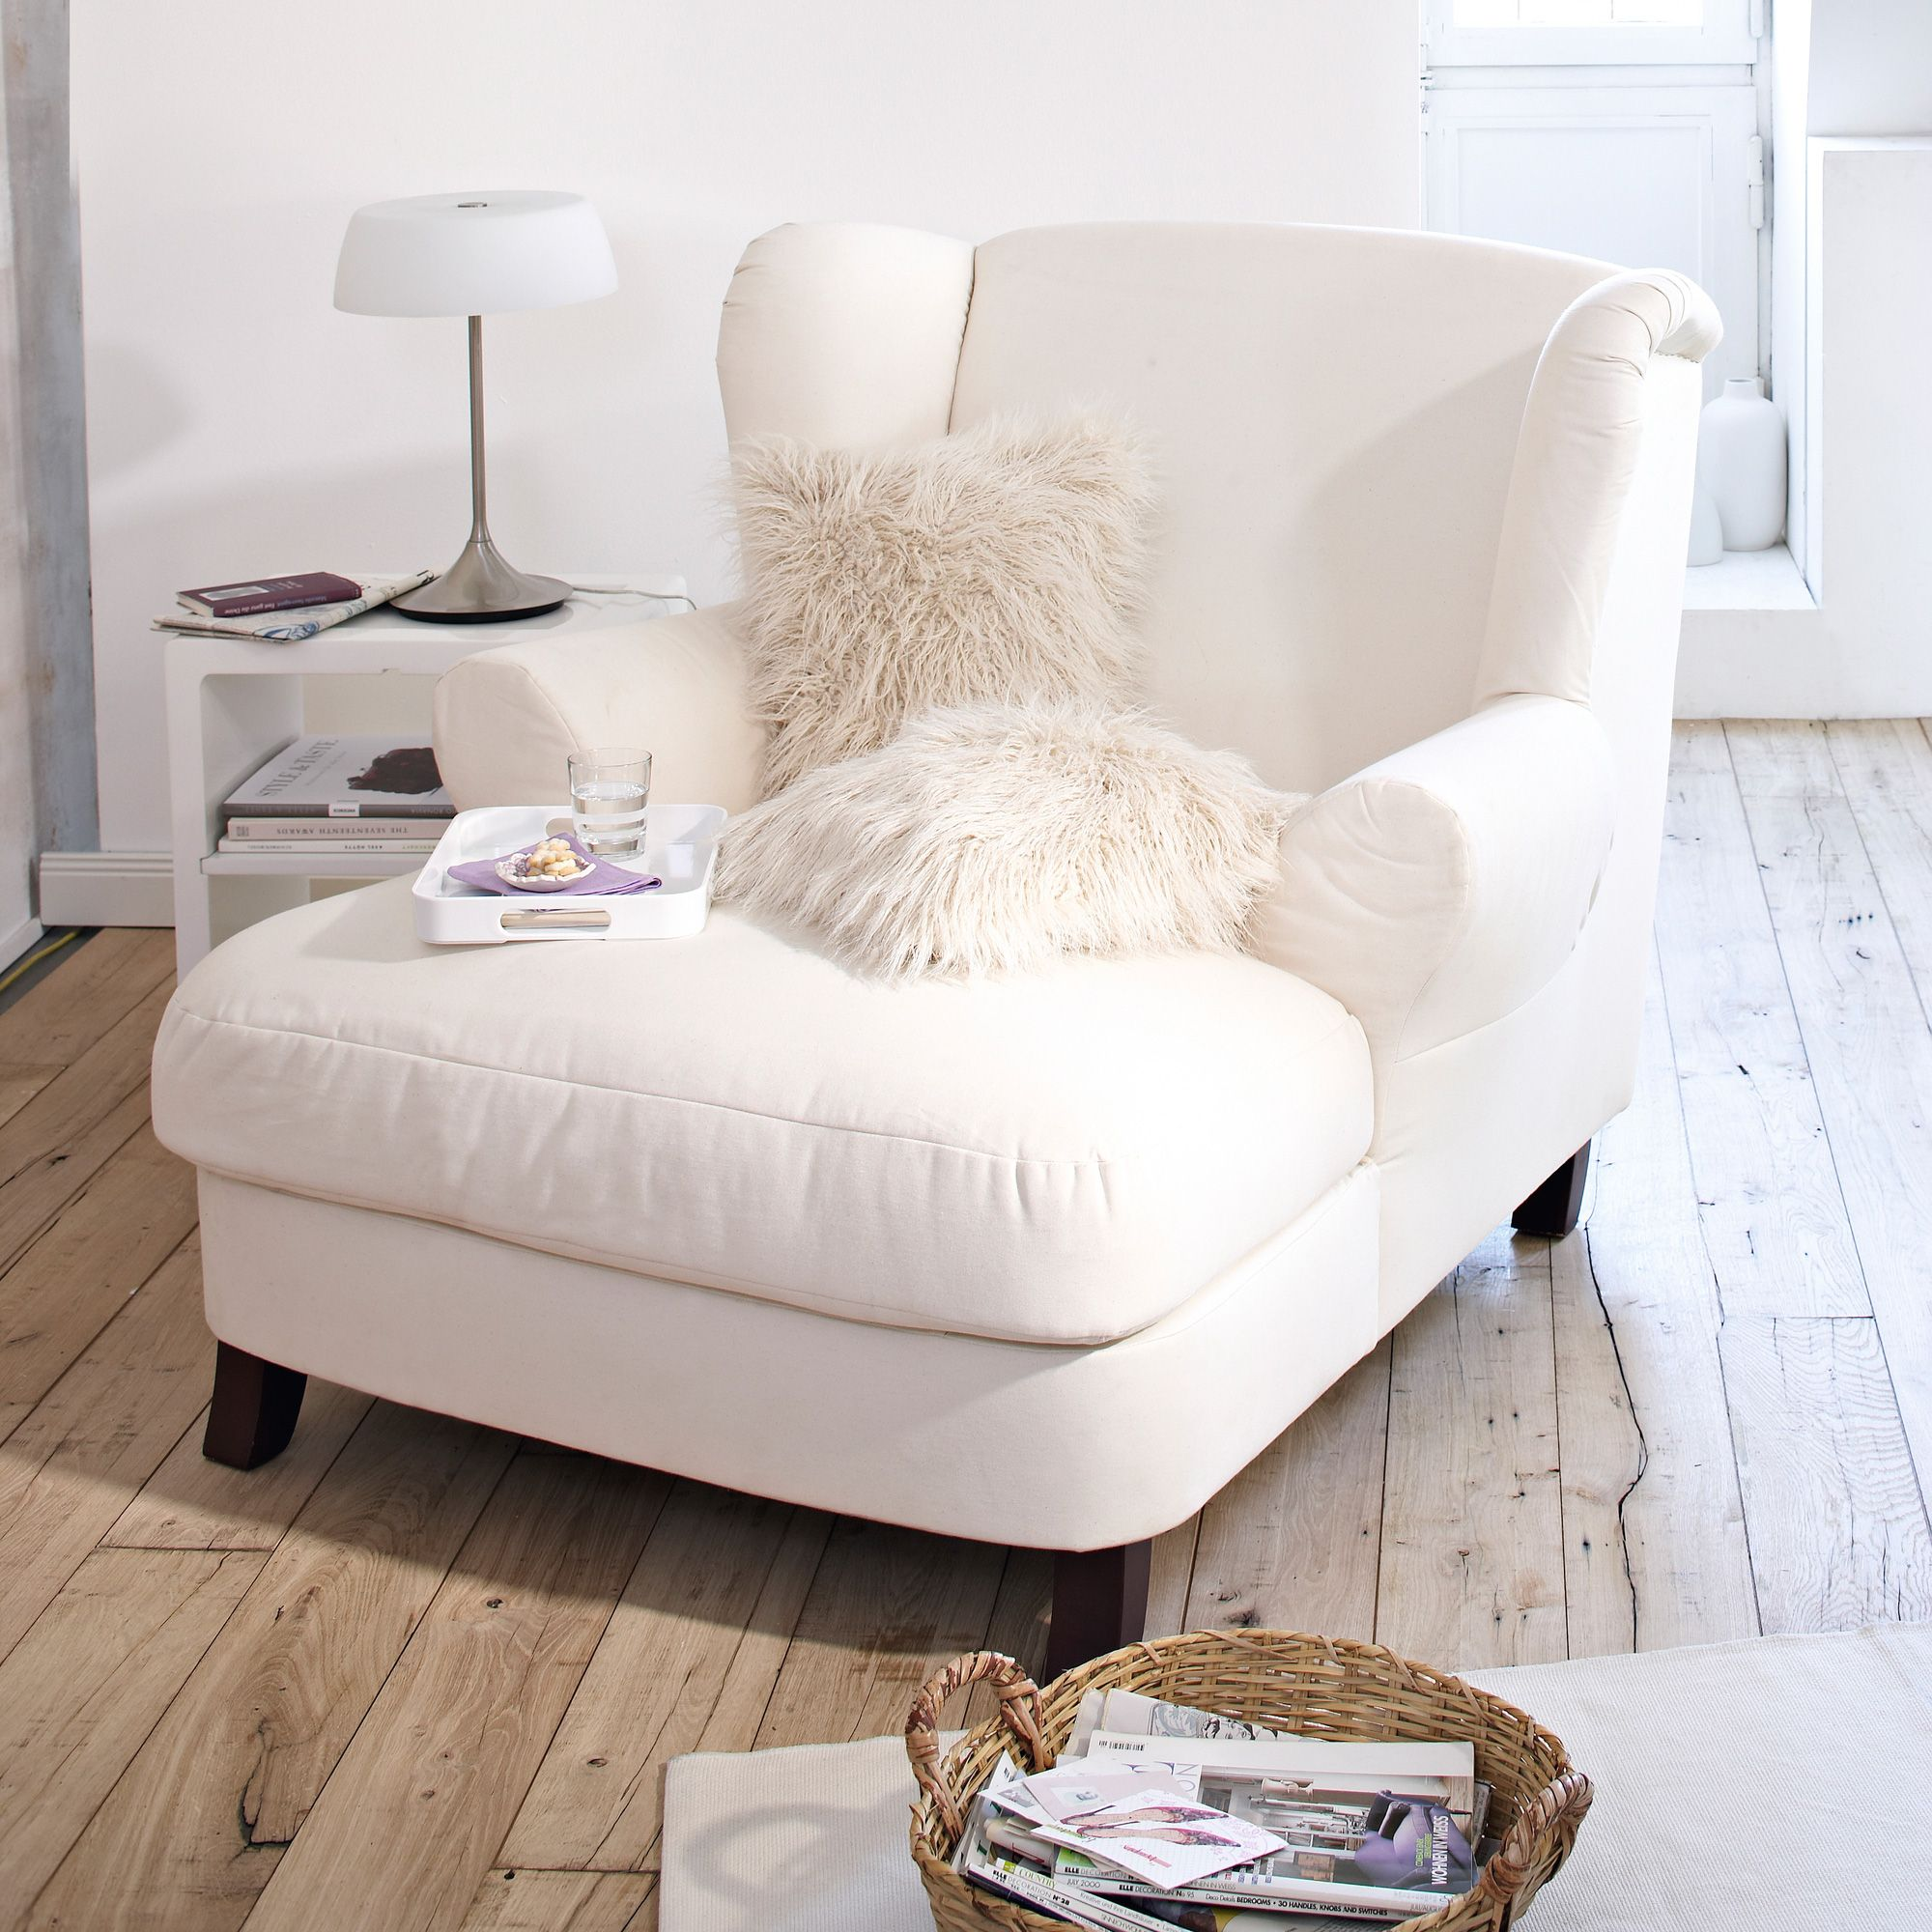 Nice Chair For My New Relaxing Place Cosy Armchair Big Comfy Chair Bedroom Chair